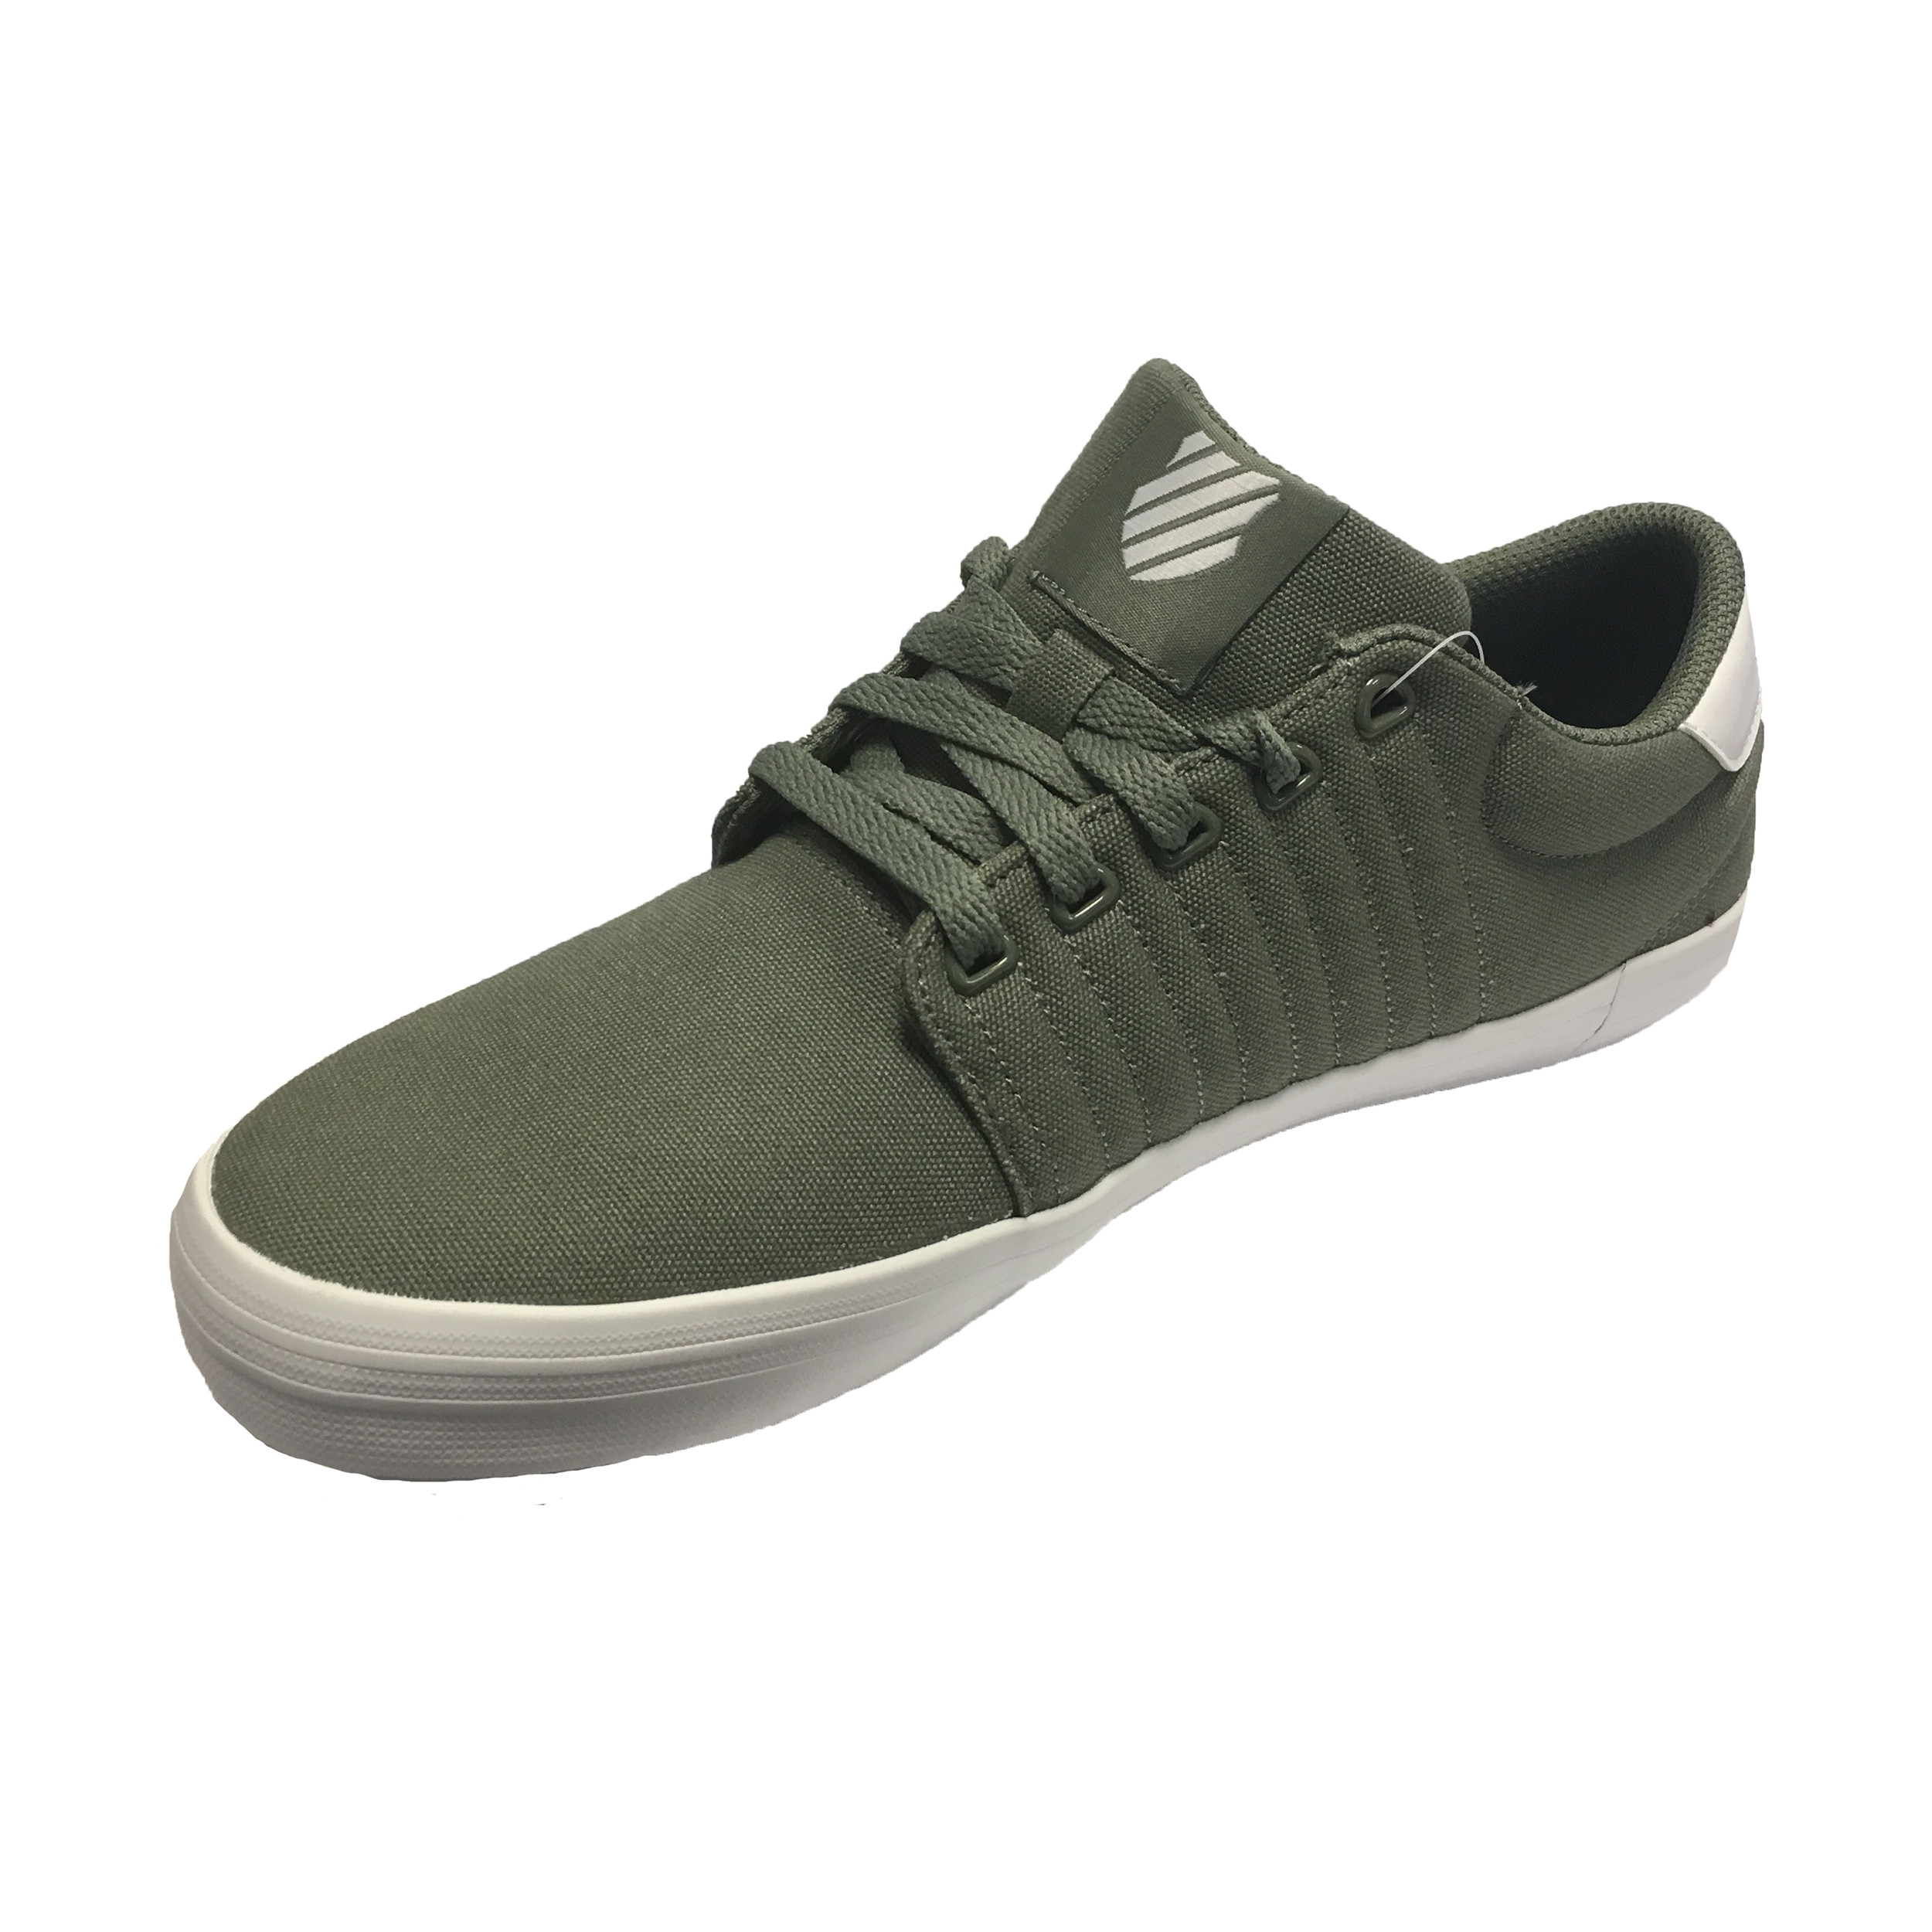 K Swiss Men S Backspin Canvas Shoes Trainers Agave Green Jean Scene